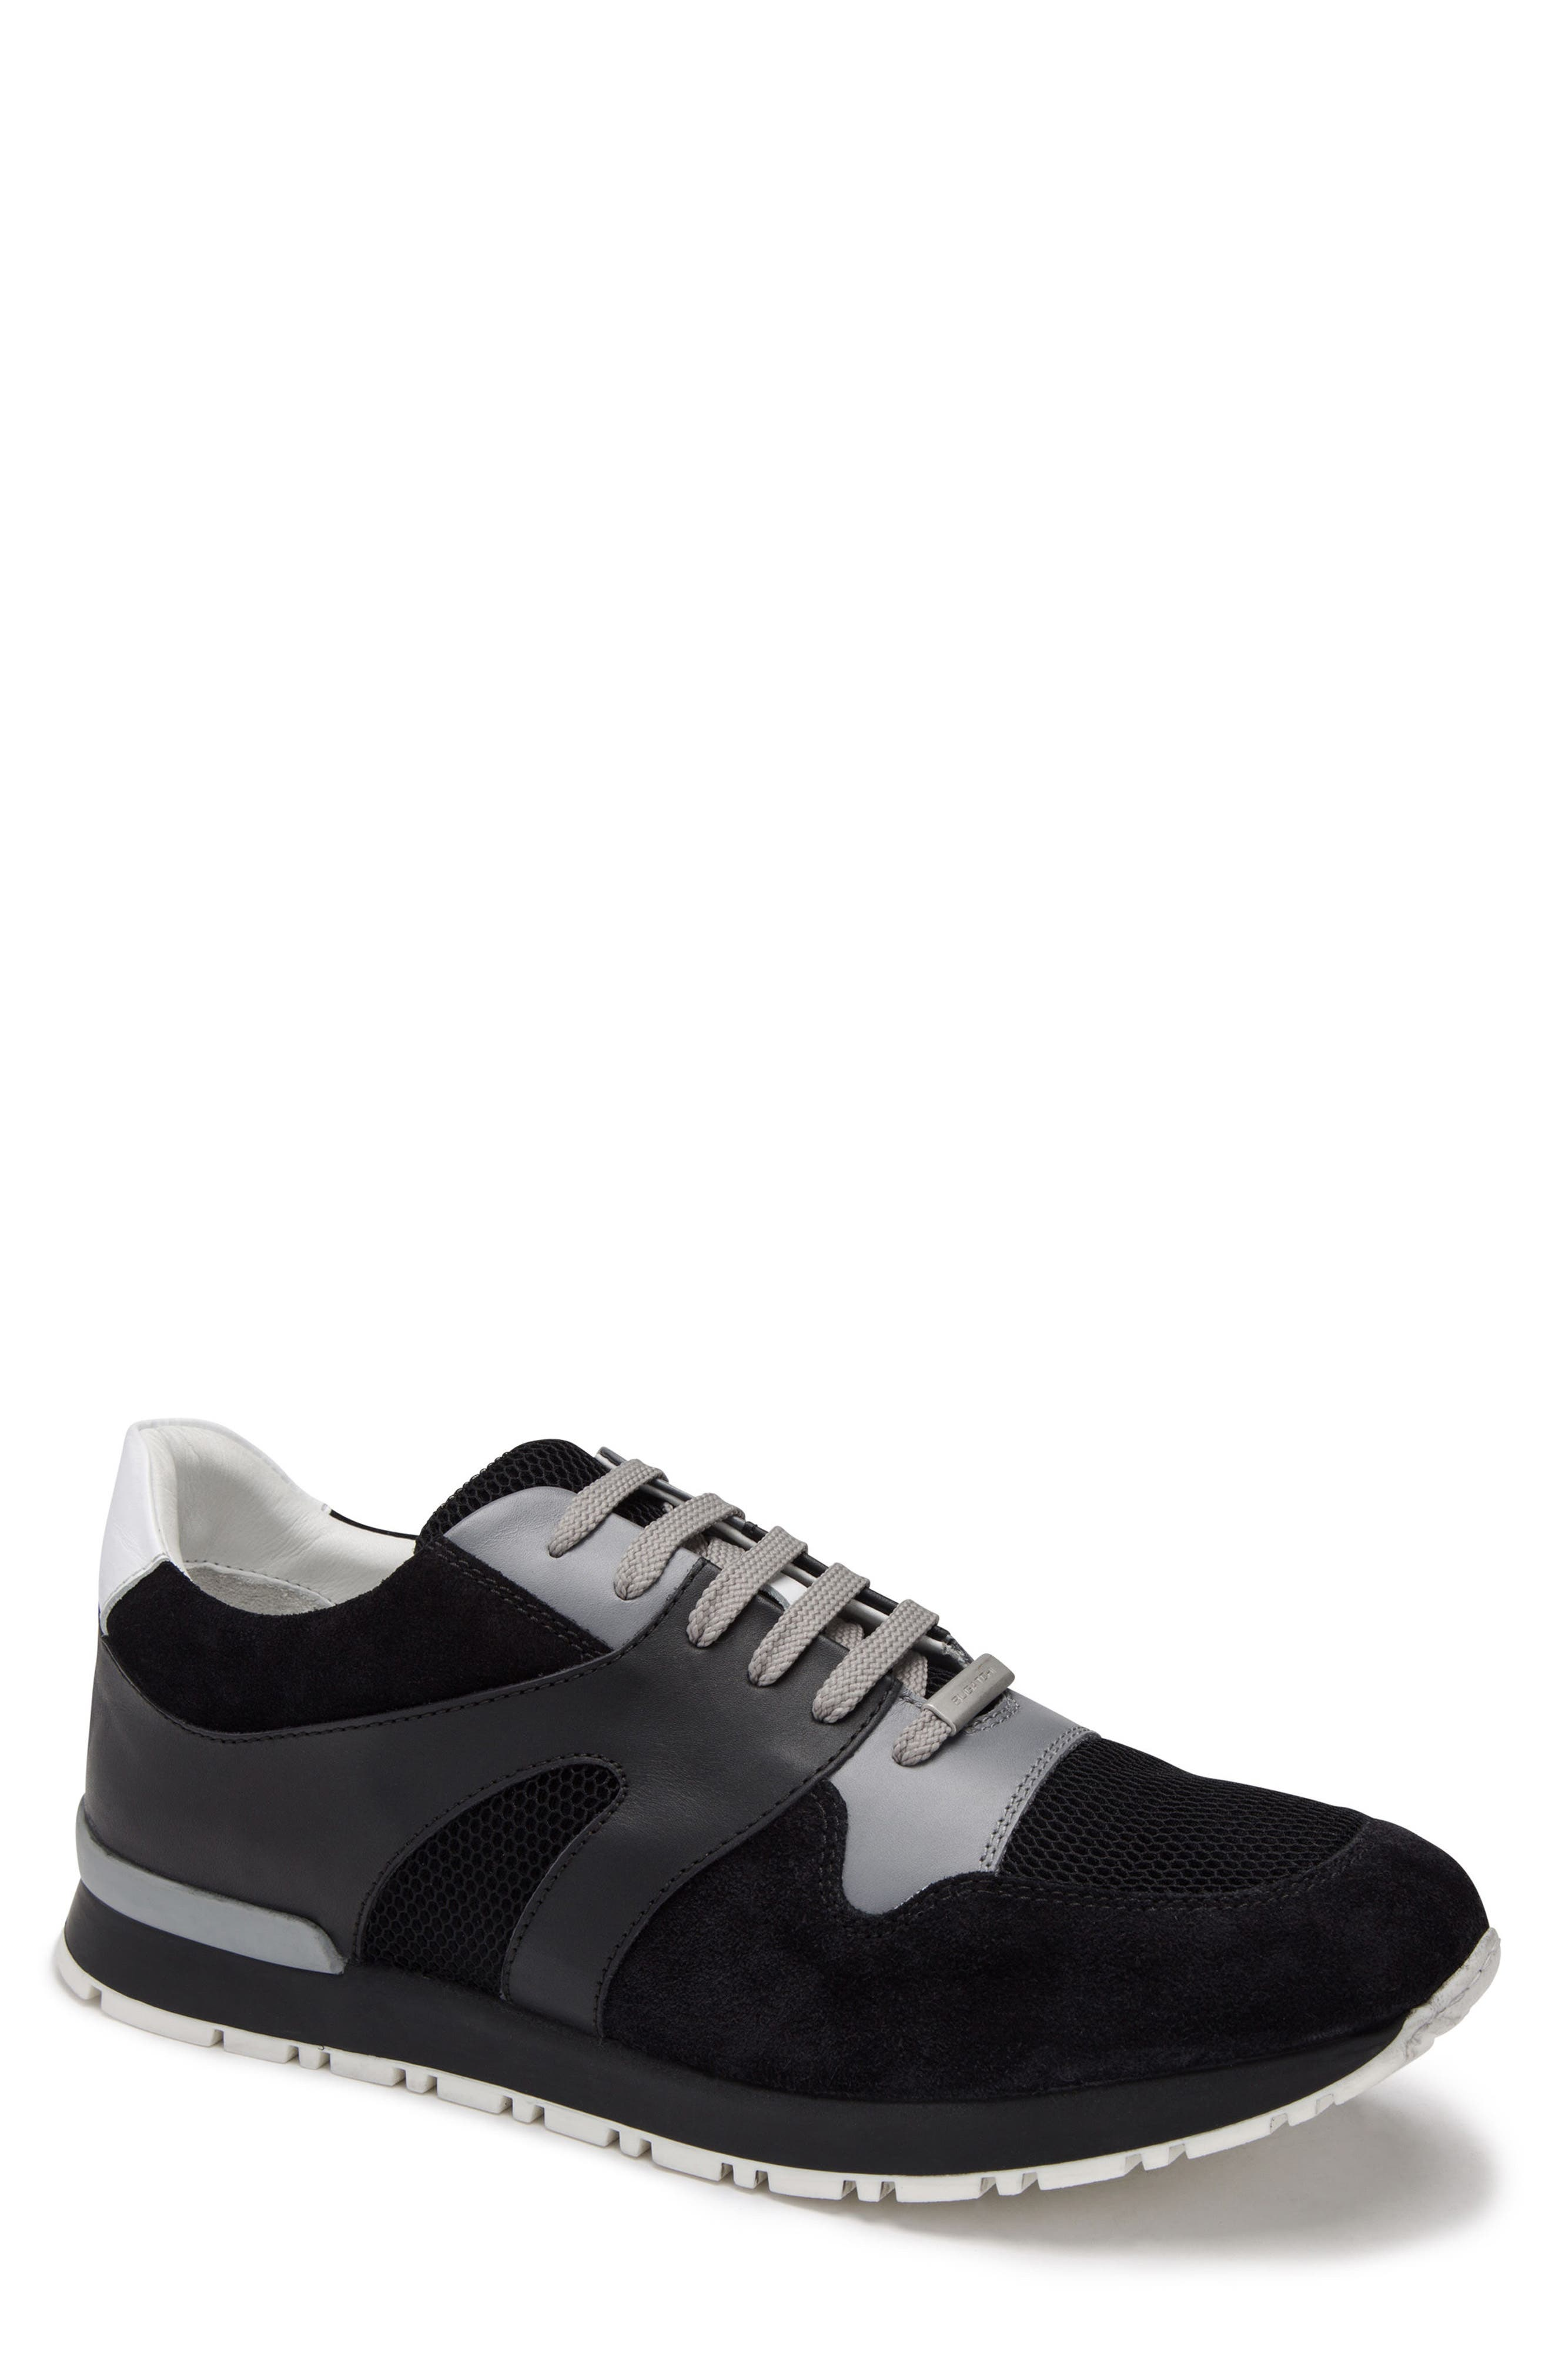 Portofino Sneaker,                             Main thumbnail 1, color,                             NERO